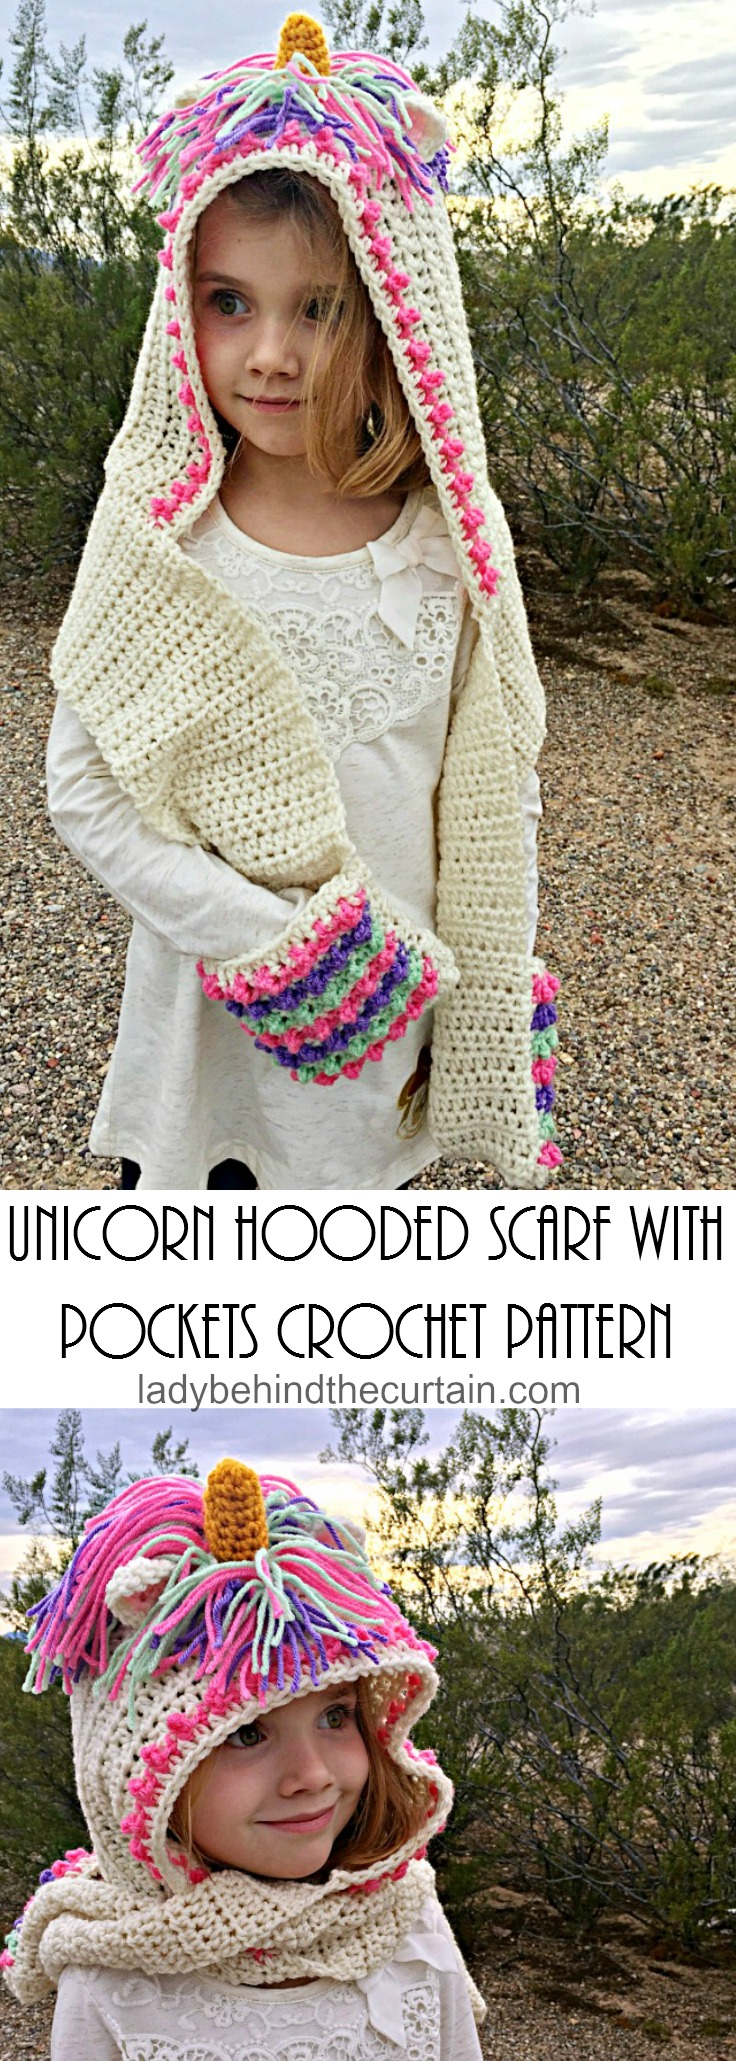 Knitted Hood Scarf Pattern Unicorn Hooded Scarf With Pockets Crochet Pattern